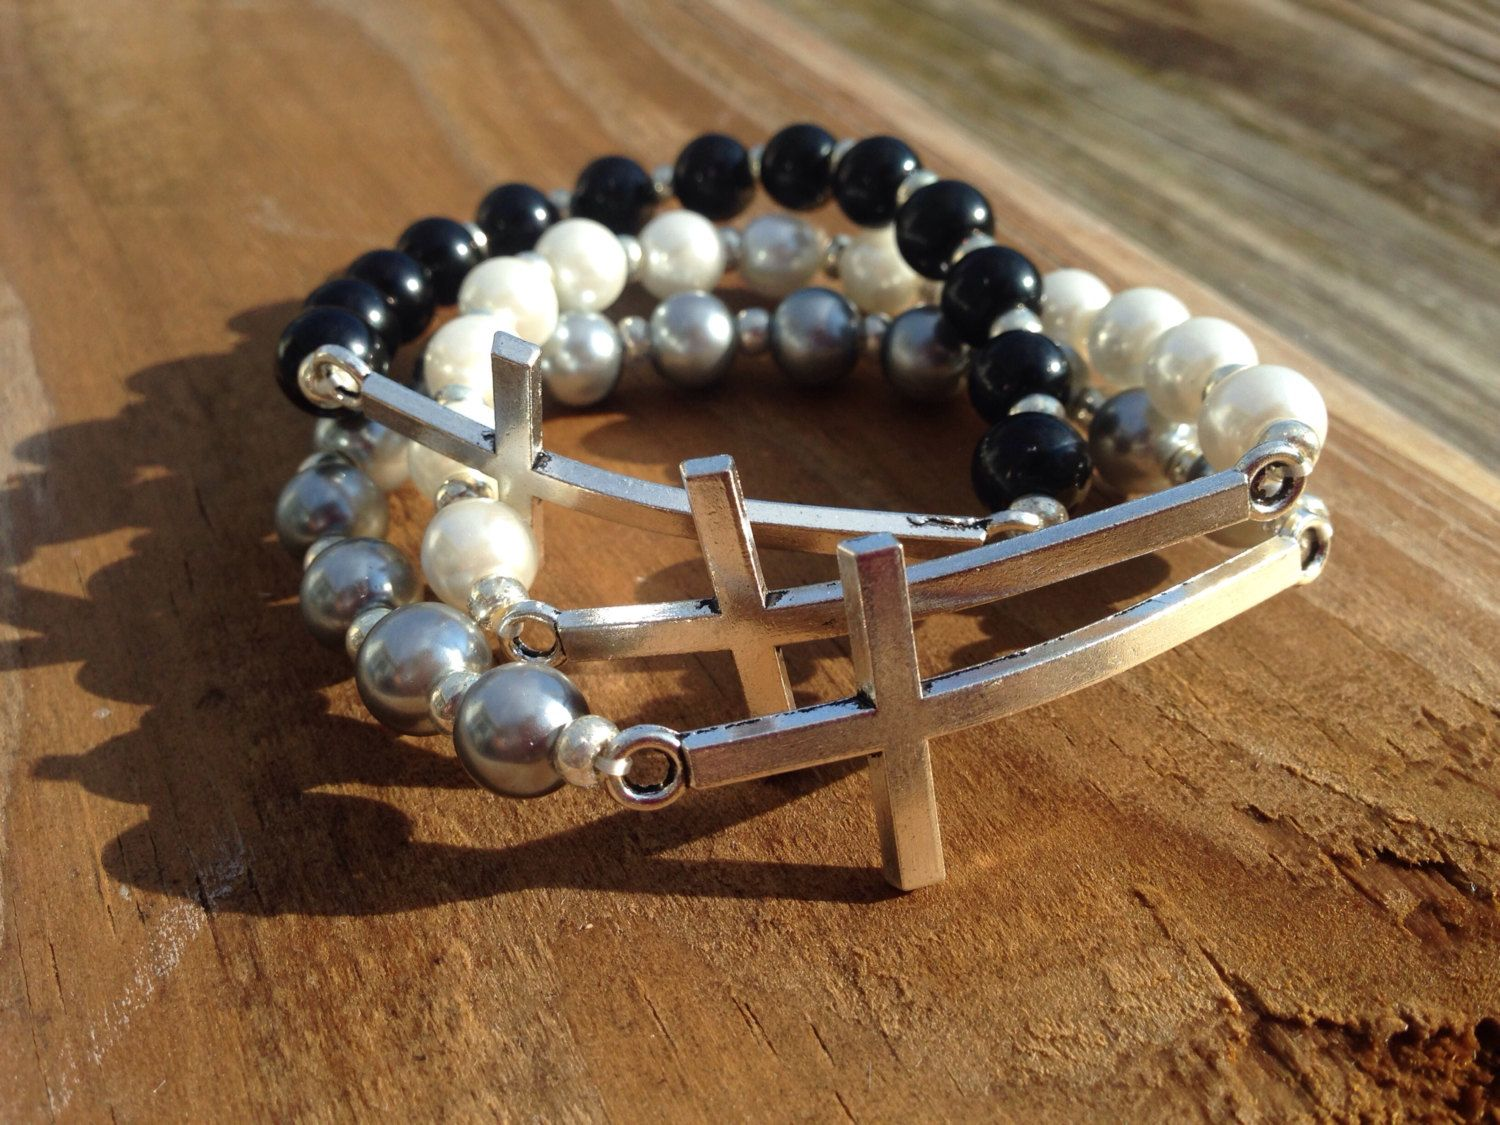 Silver cross stretch bracelet - white, black or grey pearl beads with silver spacers - fits most wrist sizes - custom fits available  by MandisMakings on Etsy